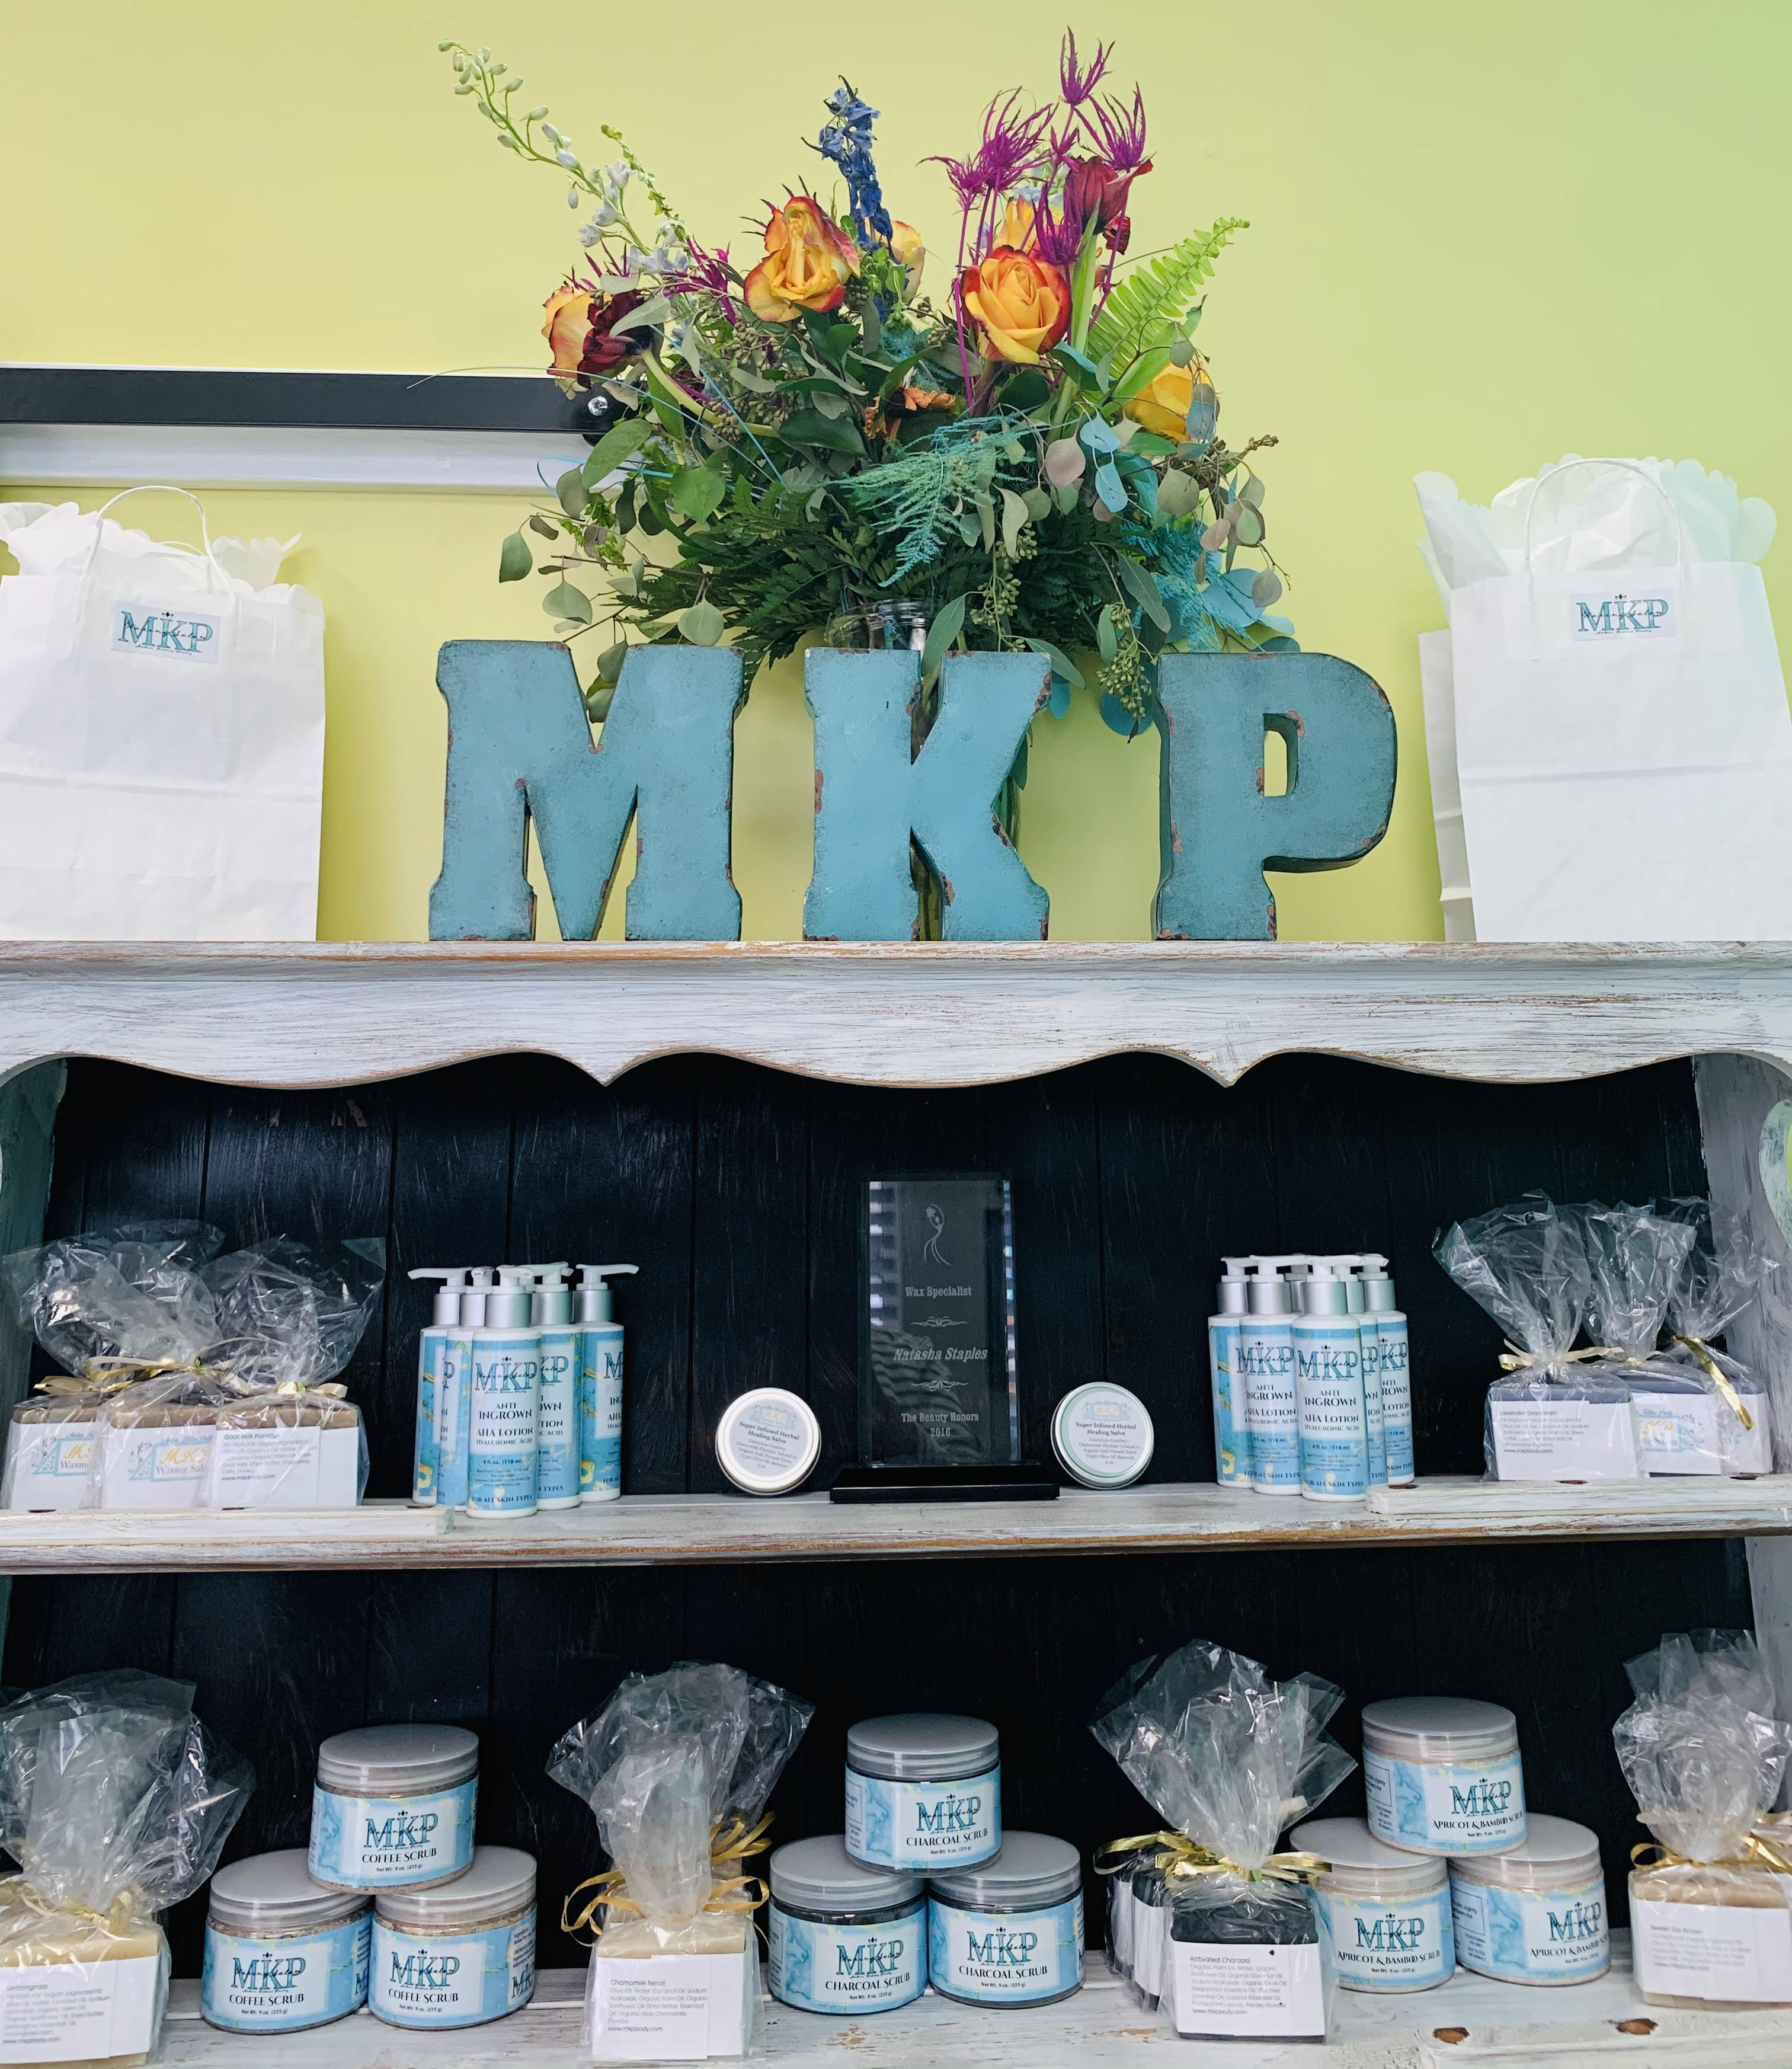 salon products columbus ga, salon products phenix city al, mkp salon, flowers, skincare, womens gifts, mkp salon, mkp products, beauty products columbus ga, waxing products, skincare